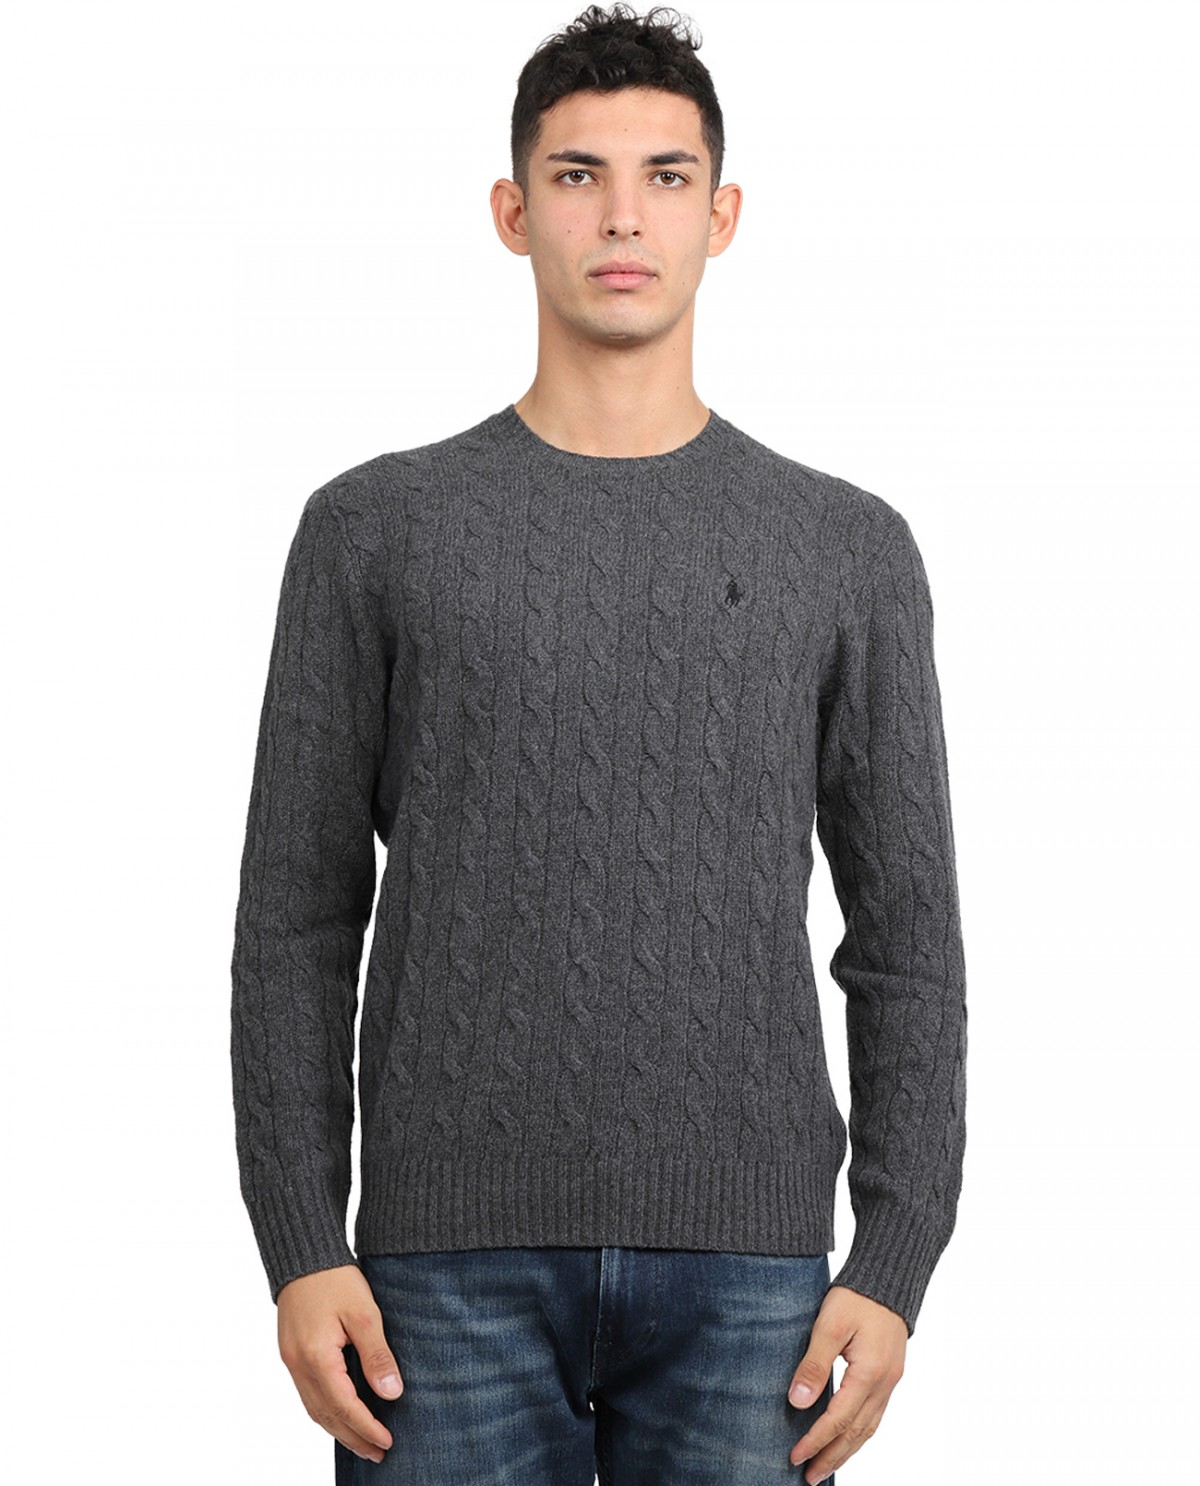 Loro Piana blue sweater